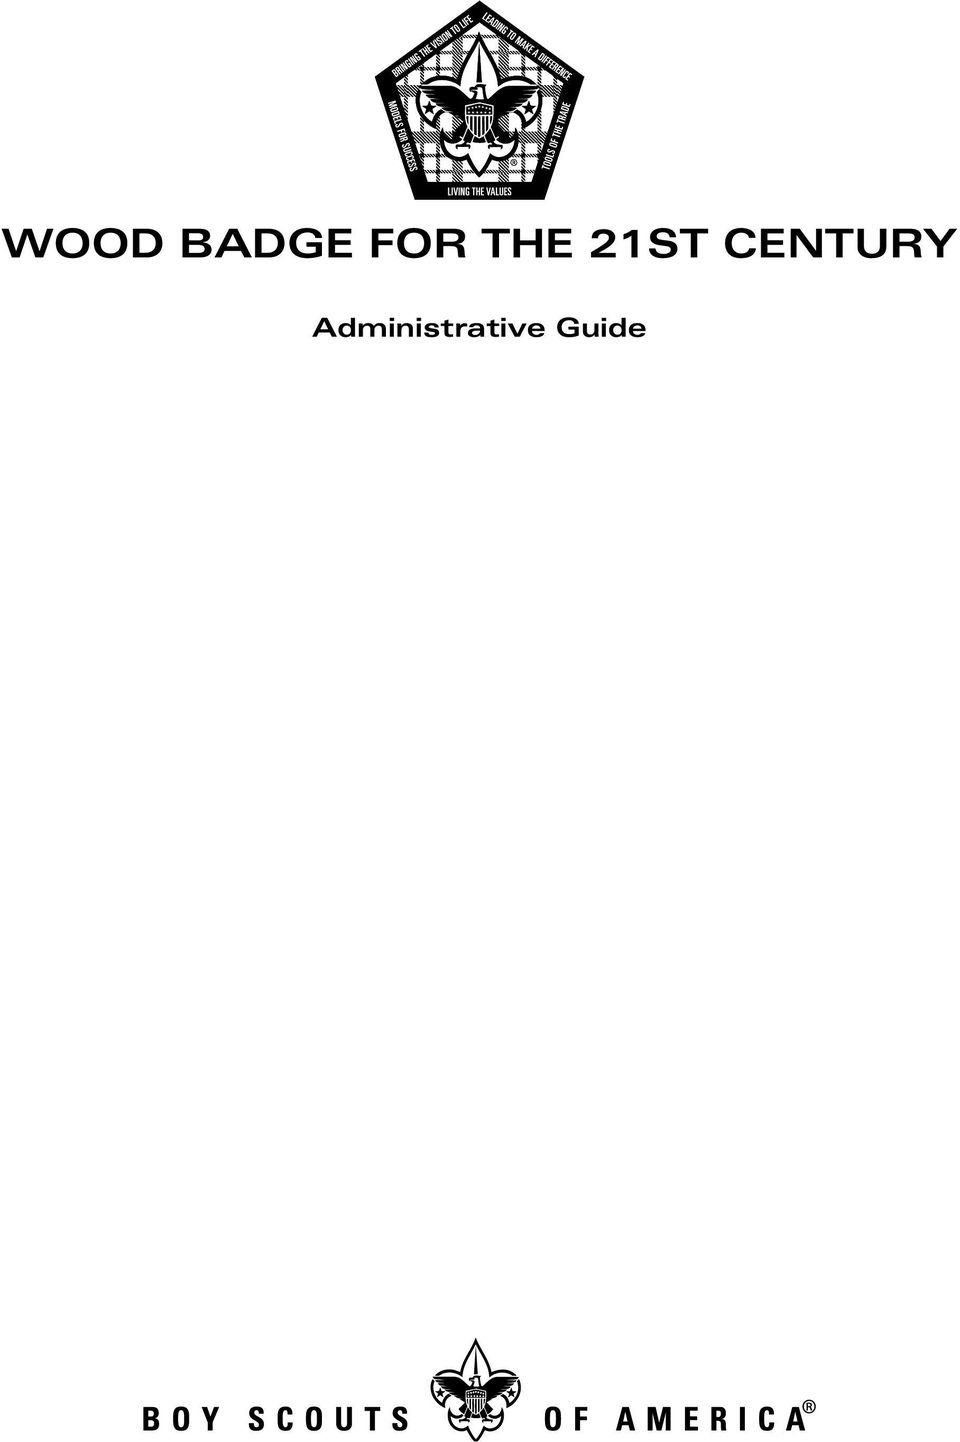 4 2008 Updates The following revisions have been made to the 2008 editions  of the Wood Badge for the 21st Century Administrative Guide and Staff Guide.